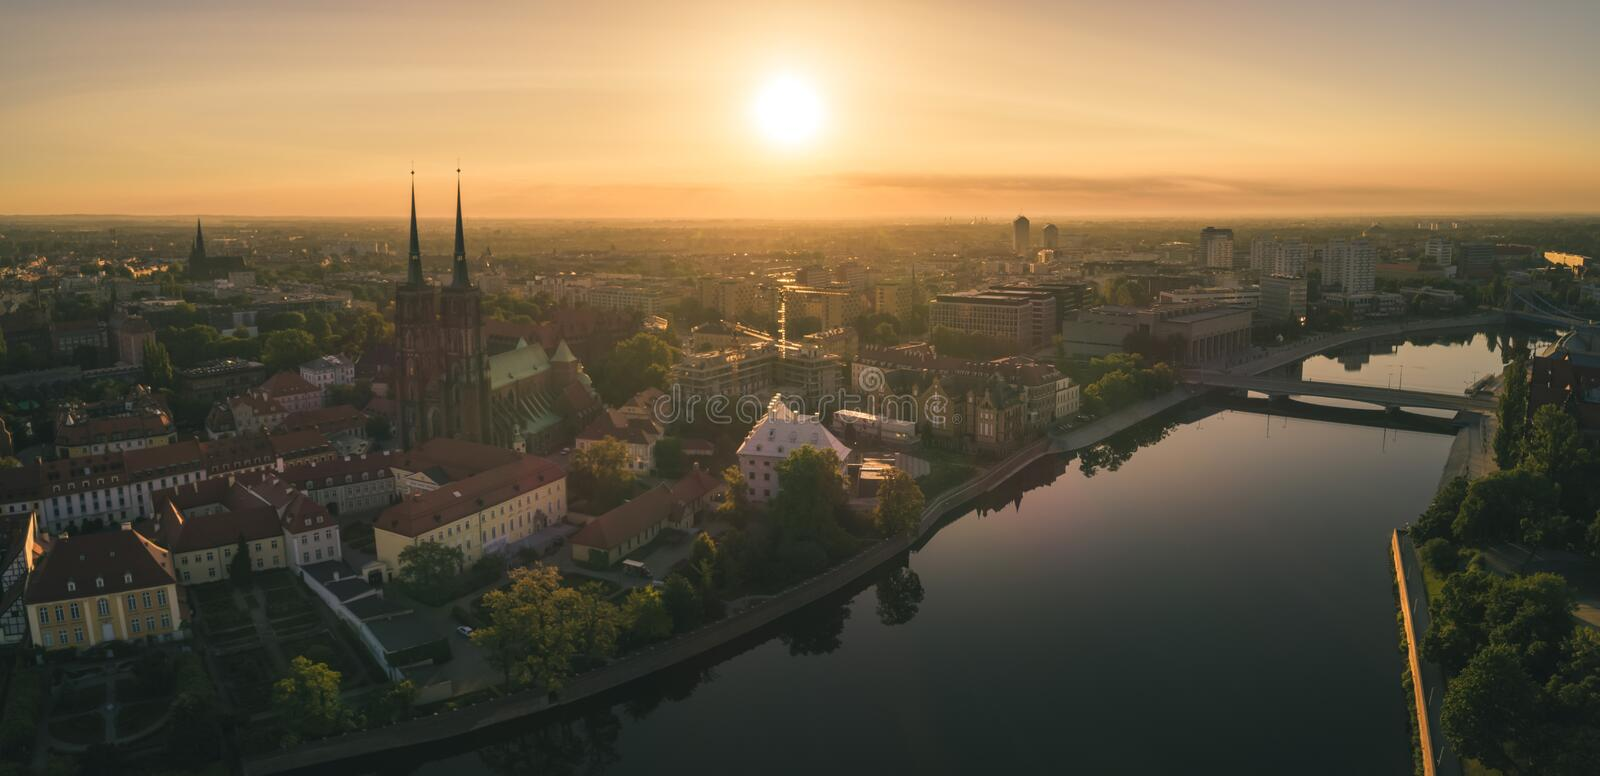 Good morning Wroclaw! Morning aerial view of the waking Ostrów Tumski. Wroclaw, Poland stock photography